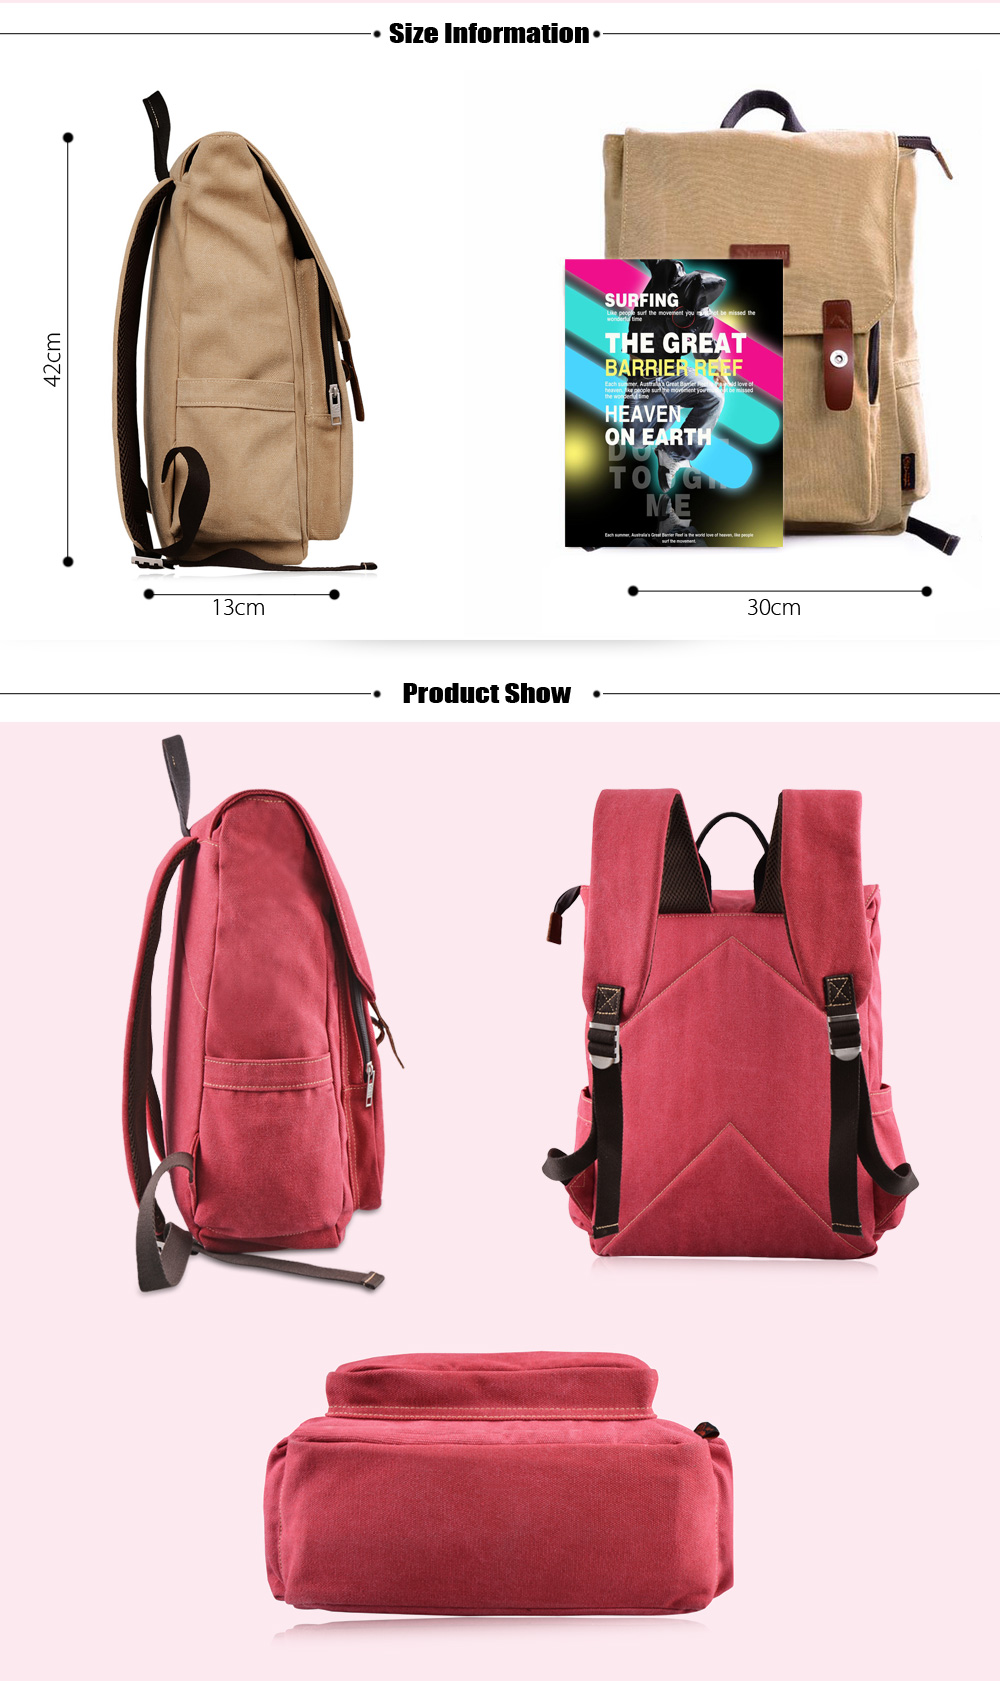 Douguyan 14 inch Canvas Logo Patched Backpack Leisure Travel Laptop Bag